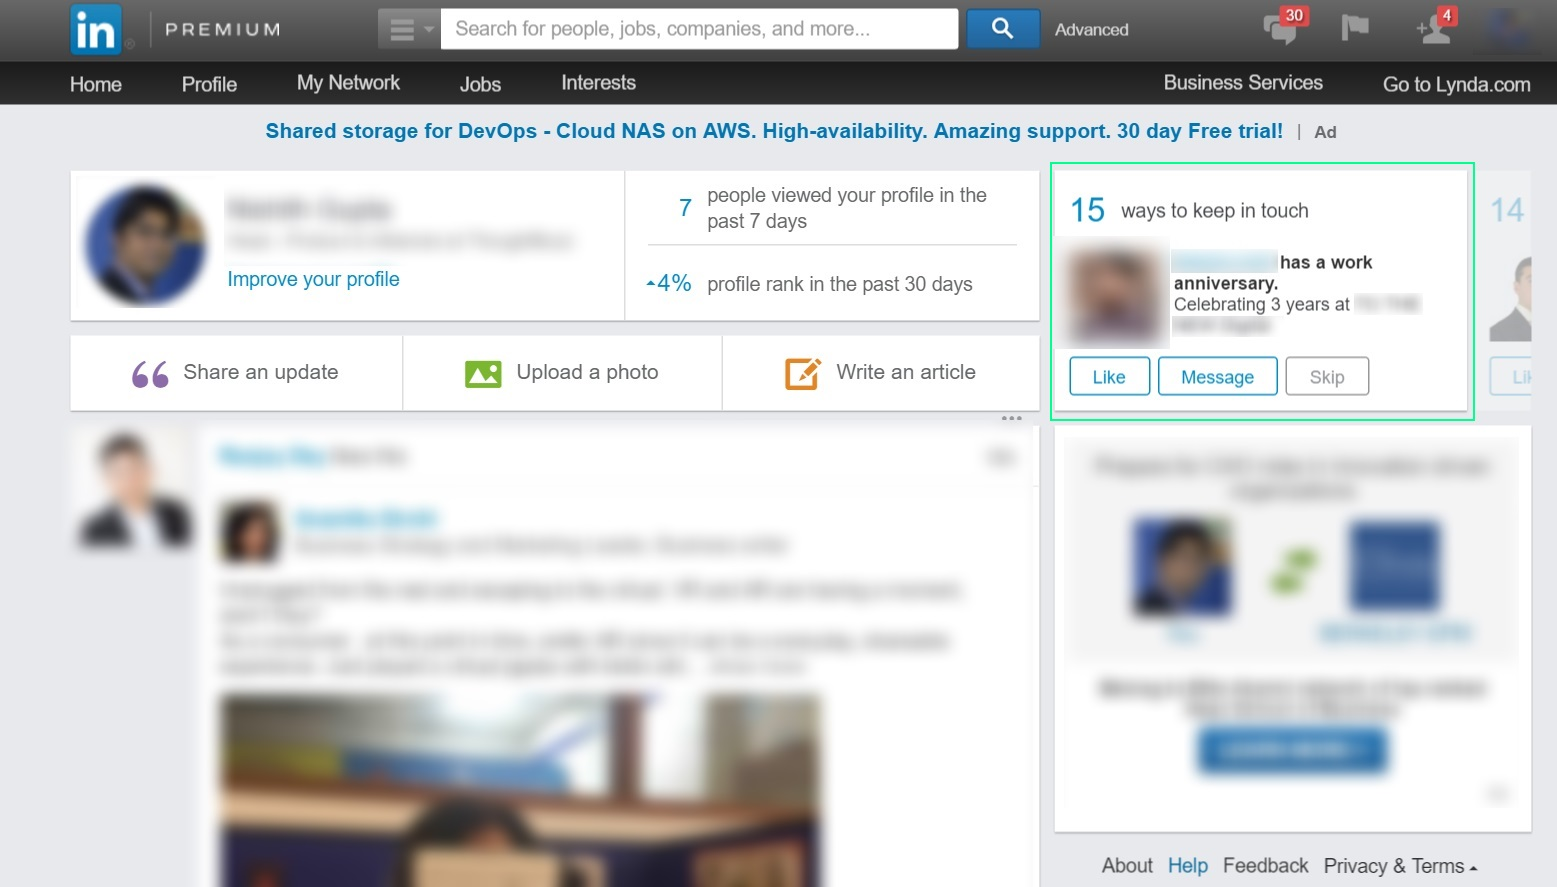 A feature that motivates users to remain engaged on Linked In